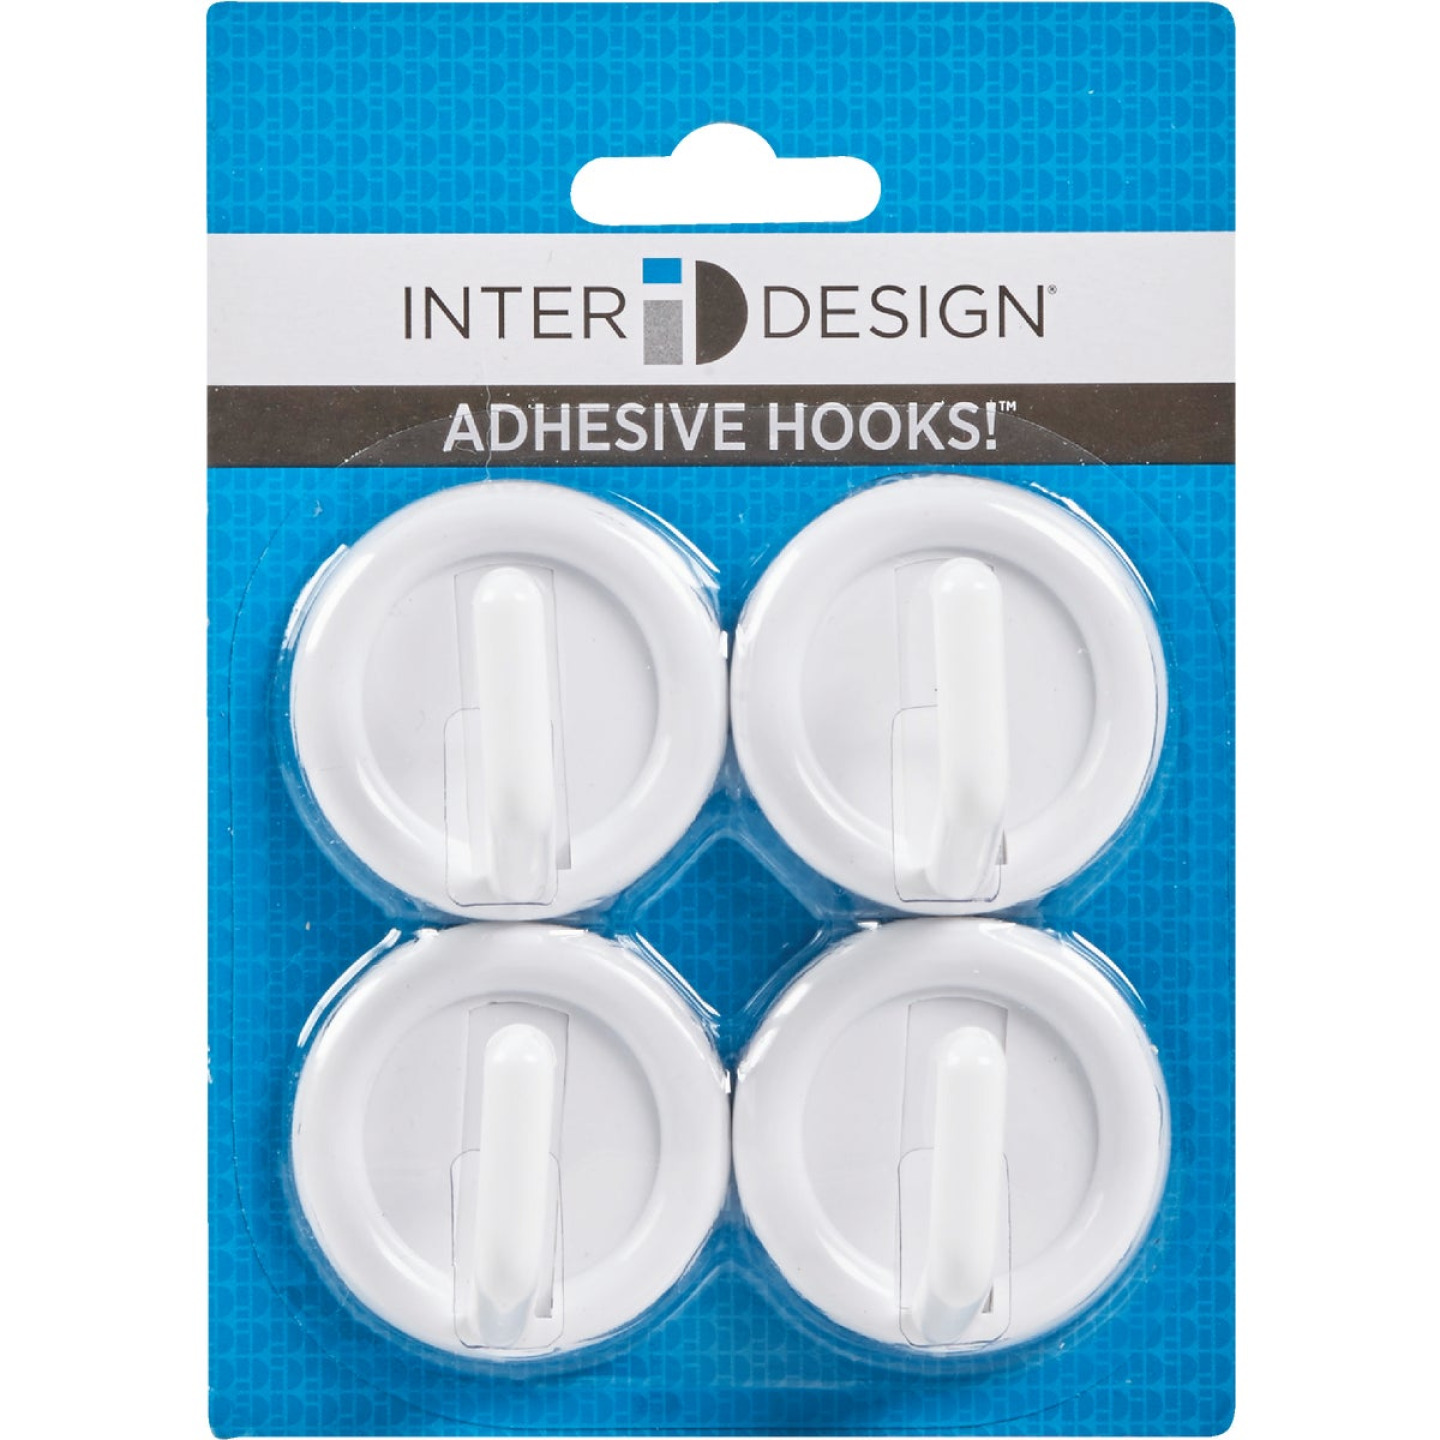 InterDesign Axis Utility Round White Adhesive Hook Image 3